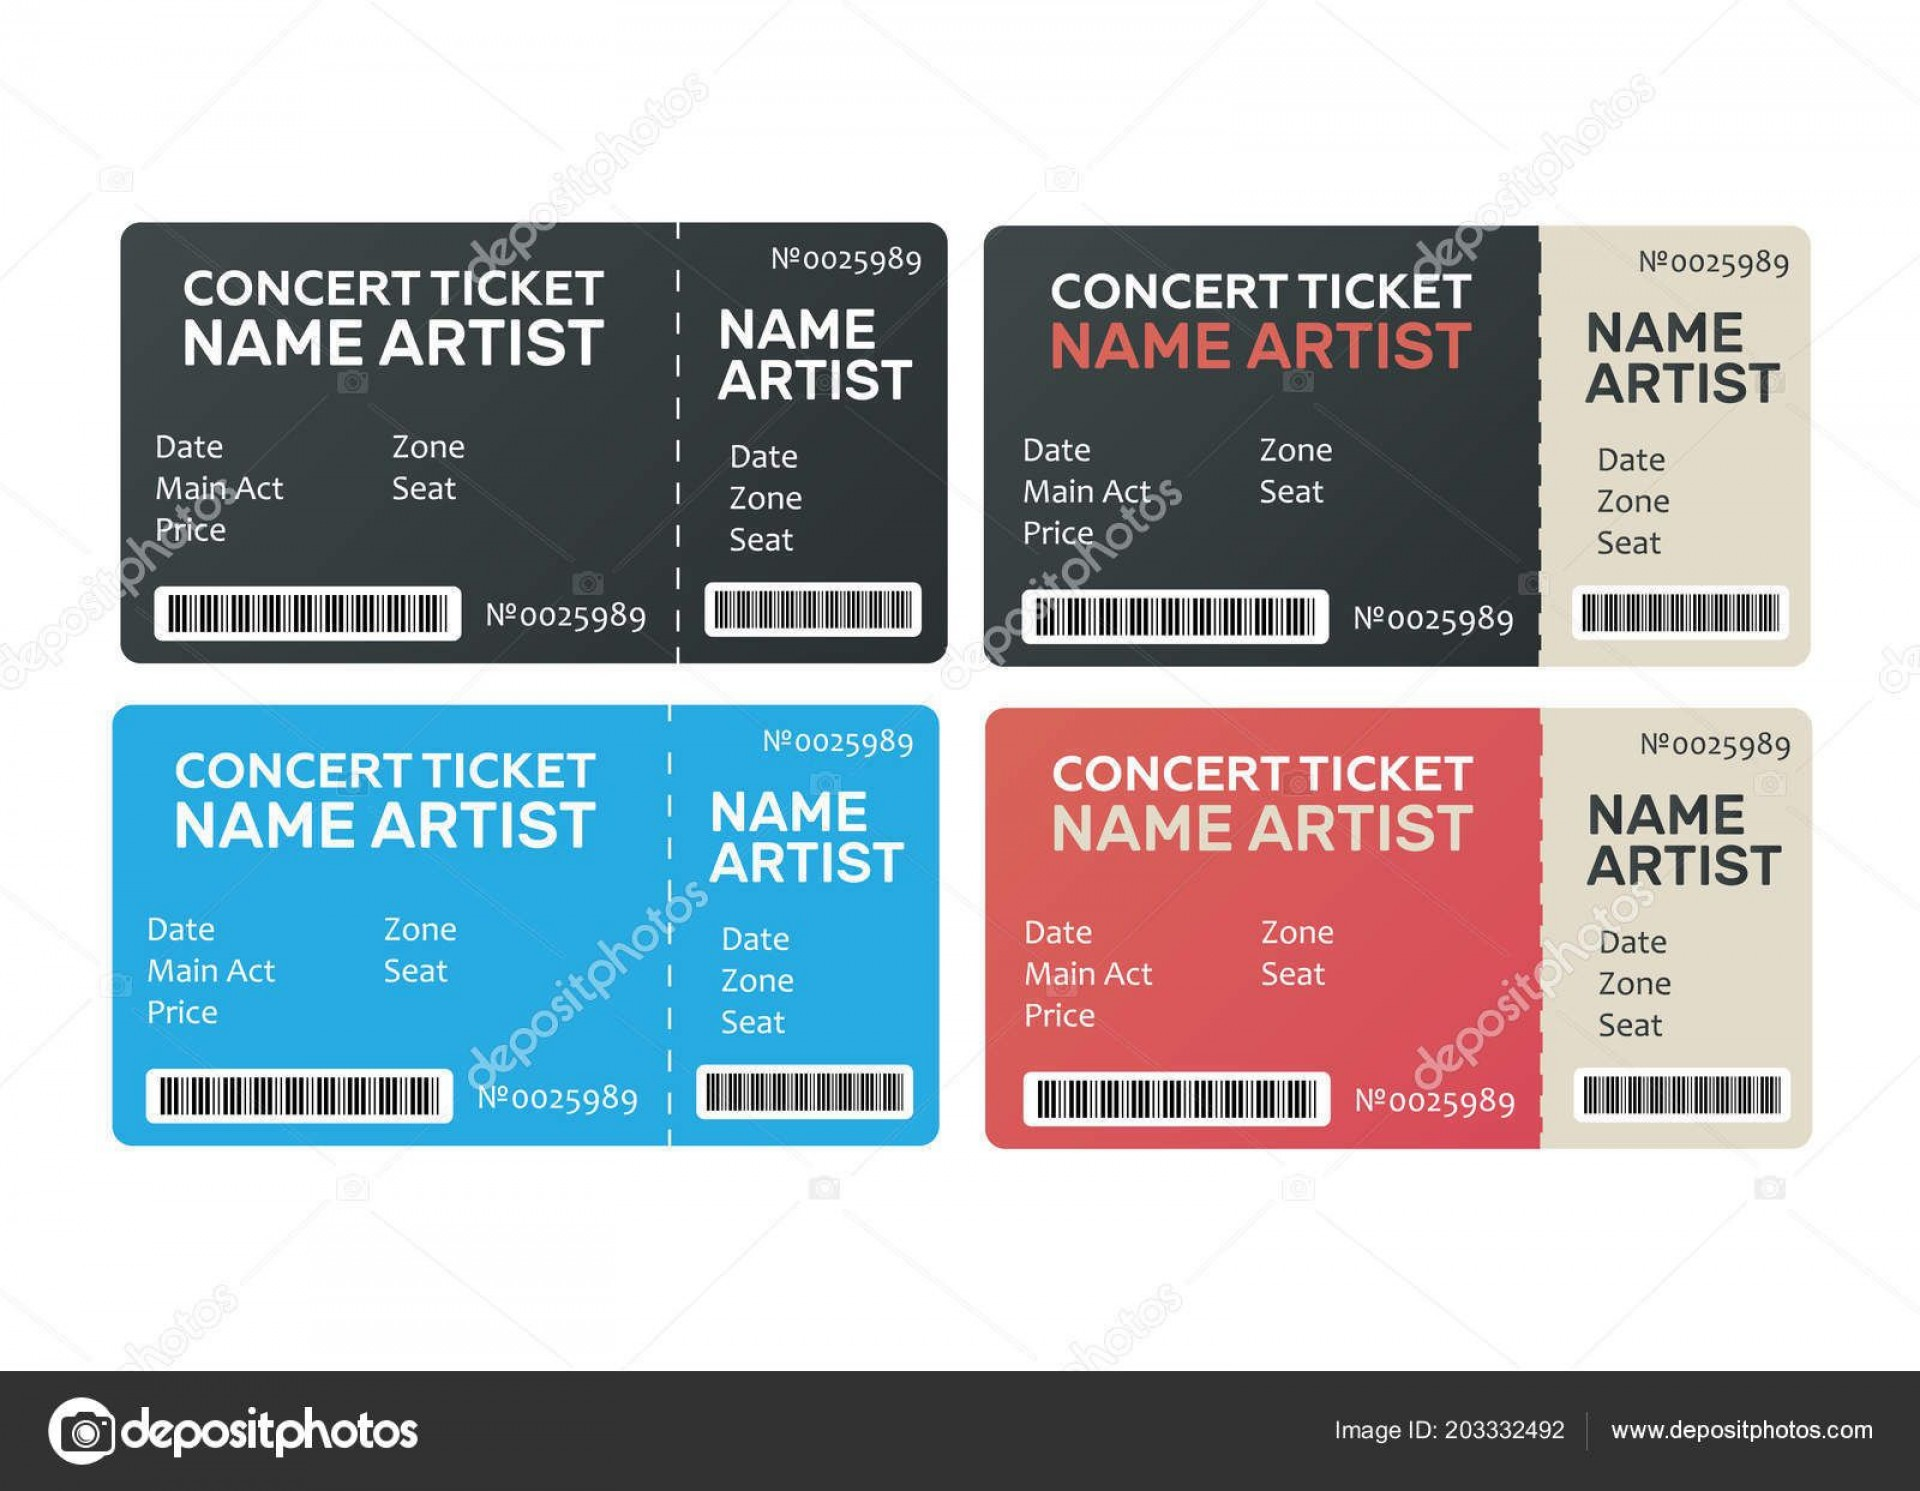 005 Imposing Concert Ticket Template Word Picture  Free Microsoft1920